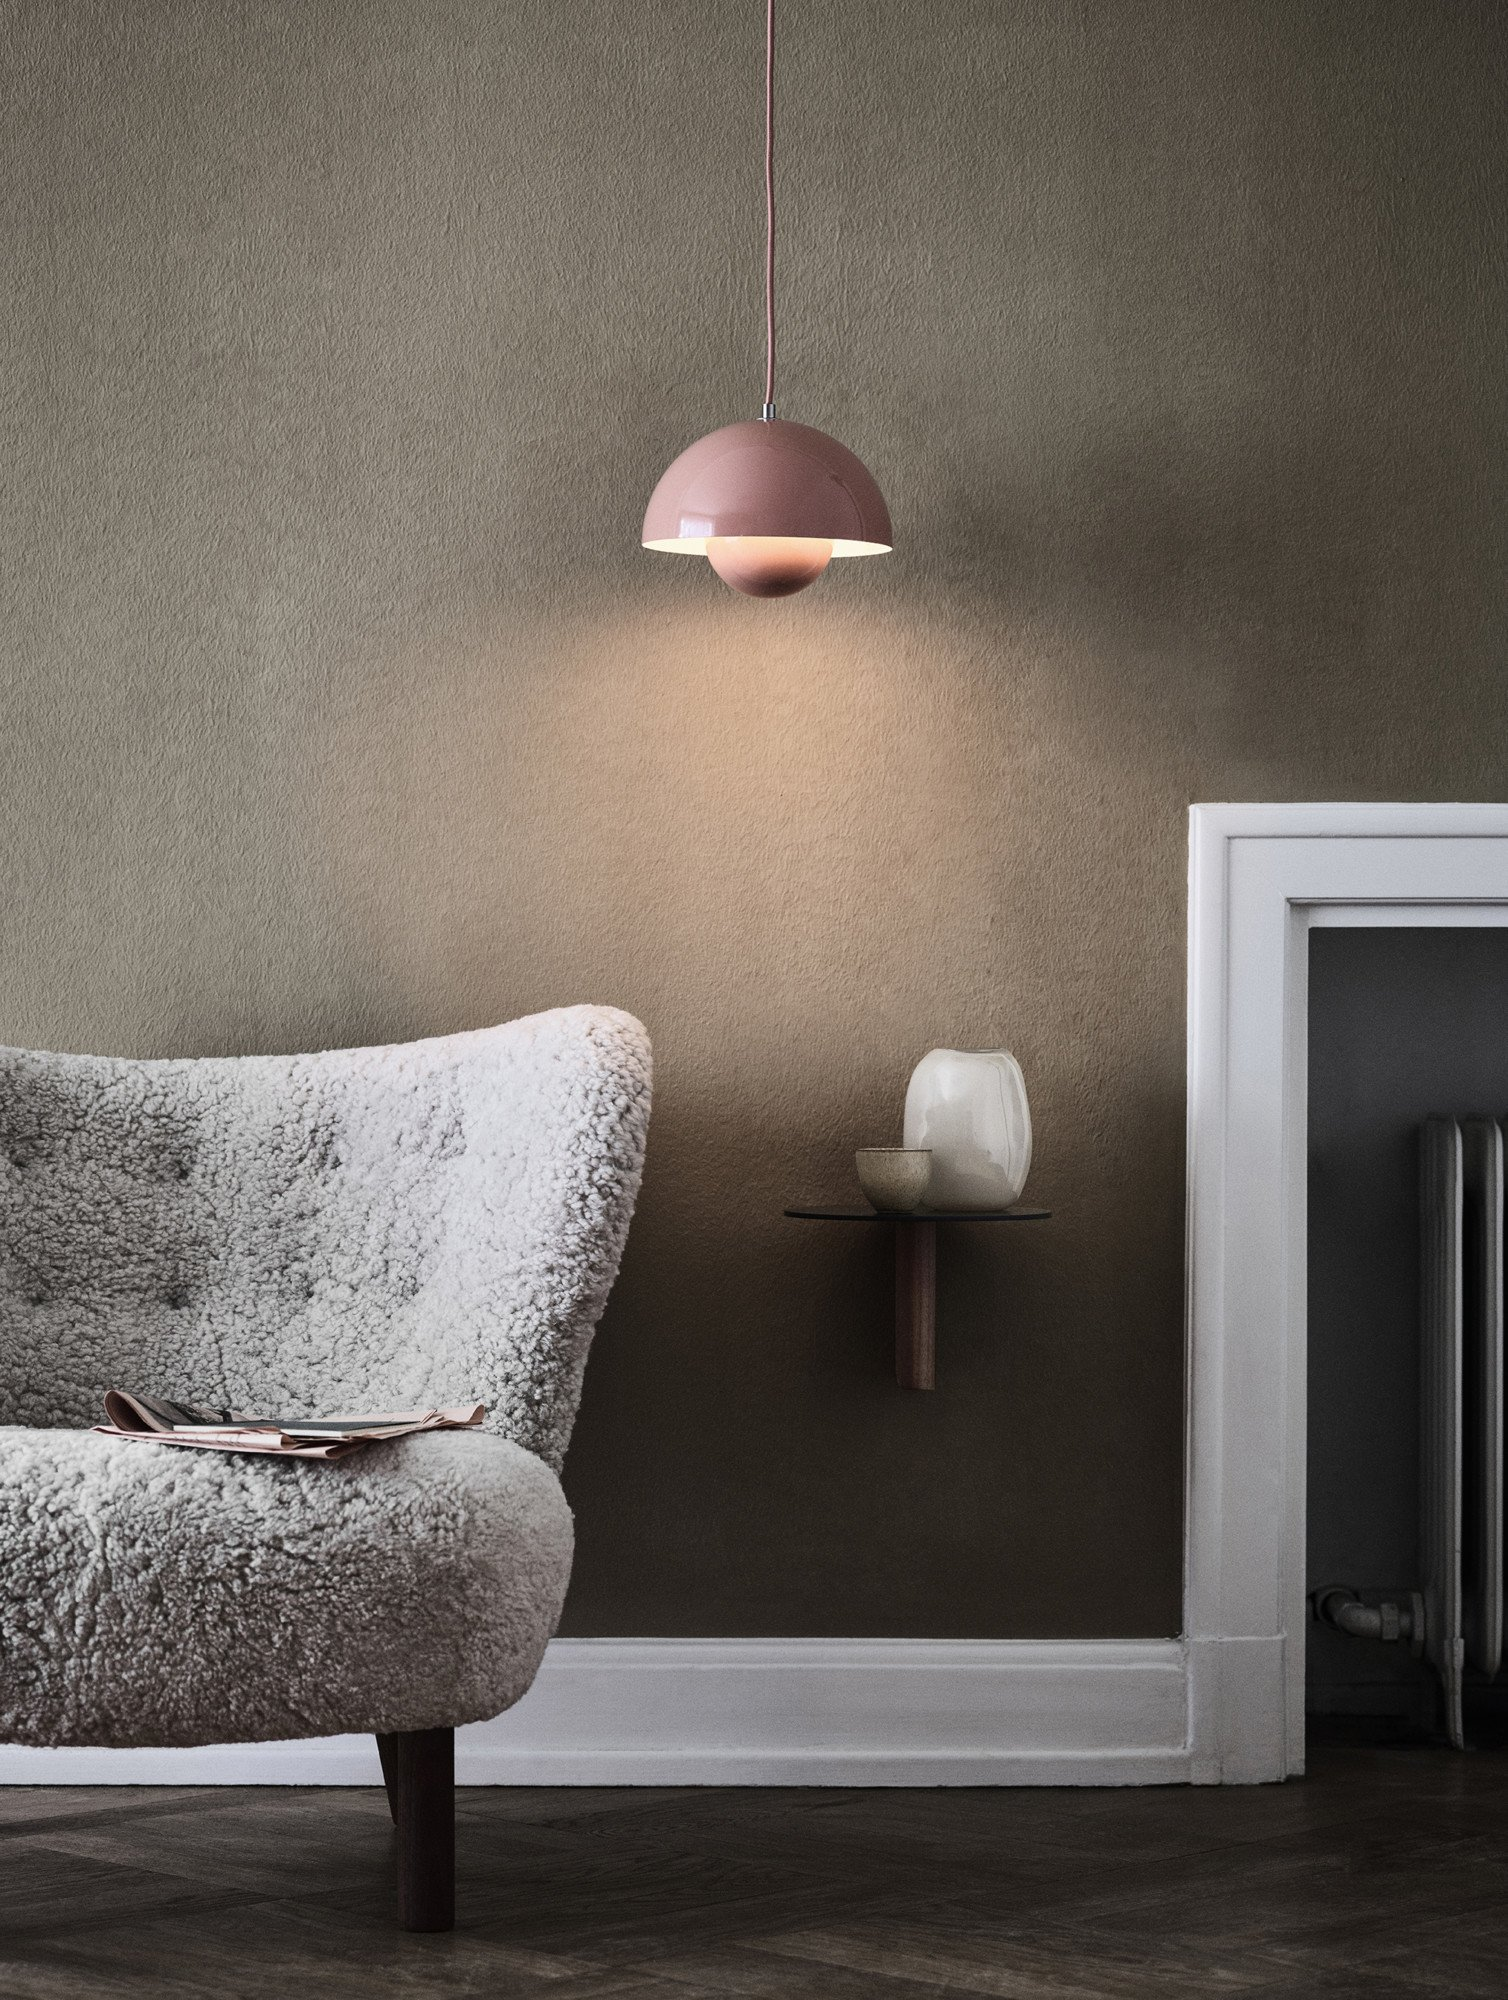 Flowerpot VP1 Pendant Lamp Grey Beige by V. Panton for &Tradition - 506862 - photo